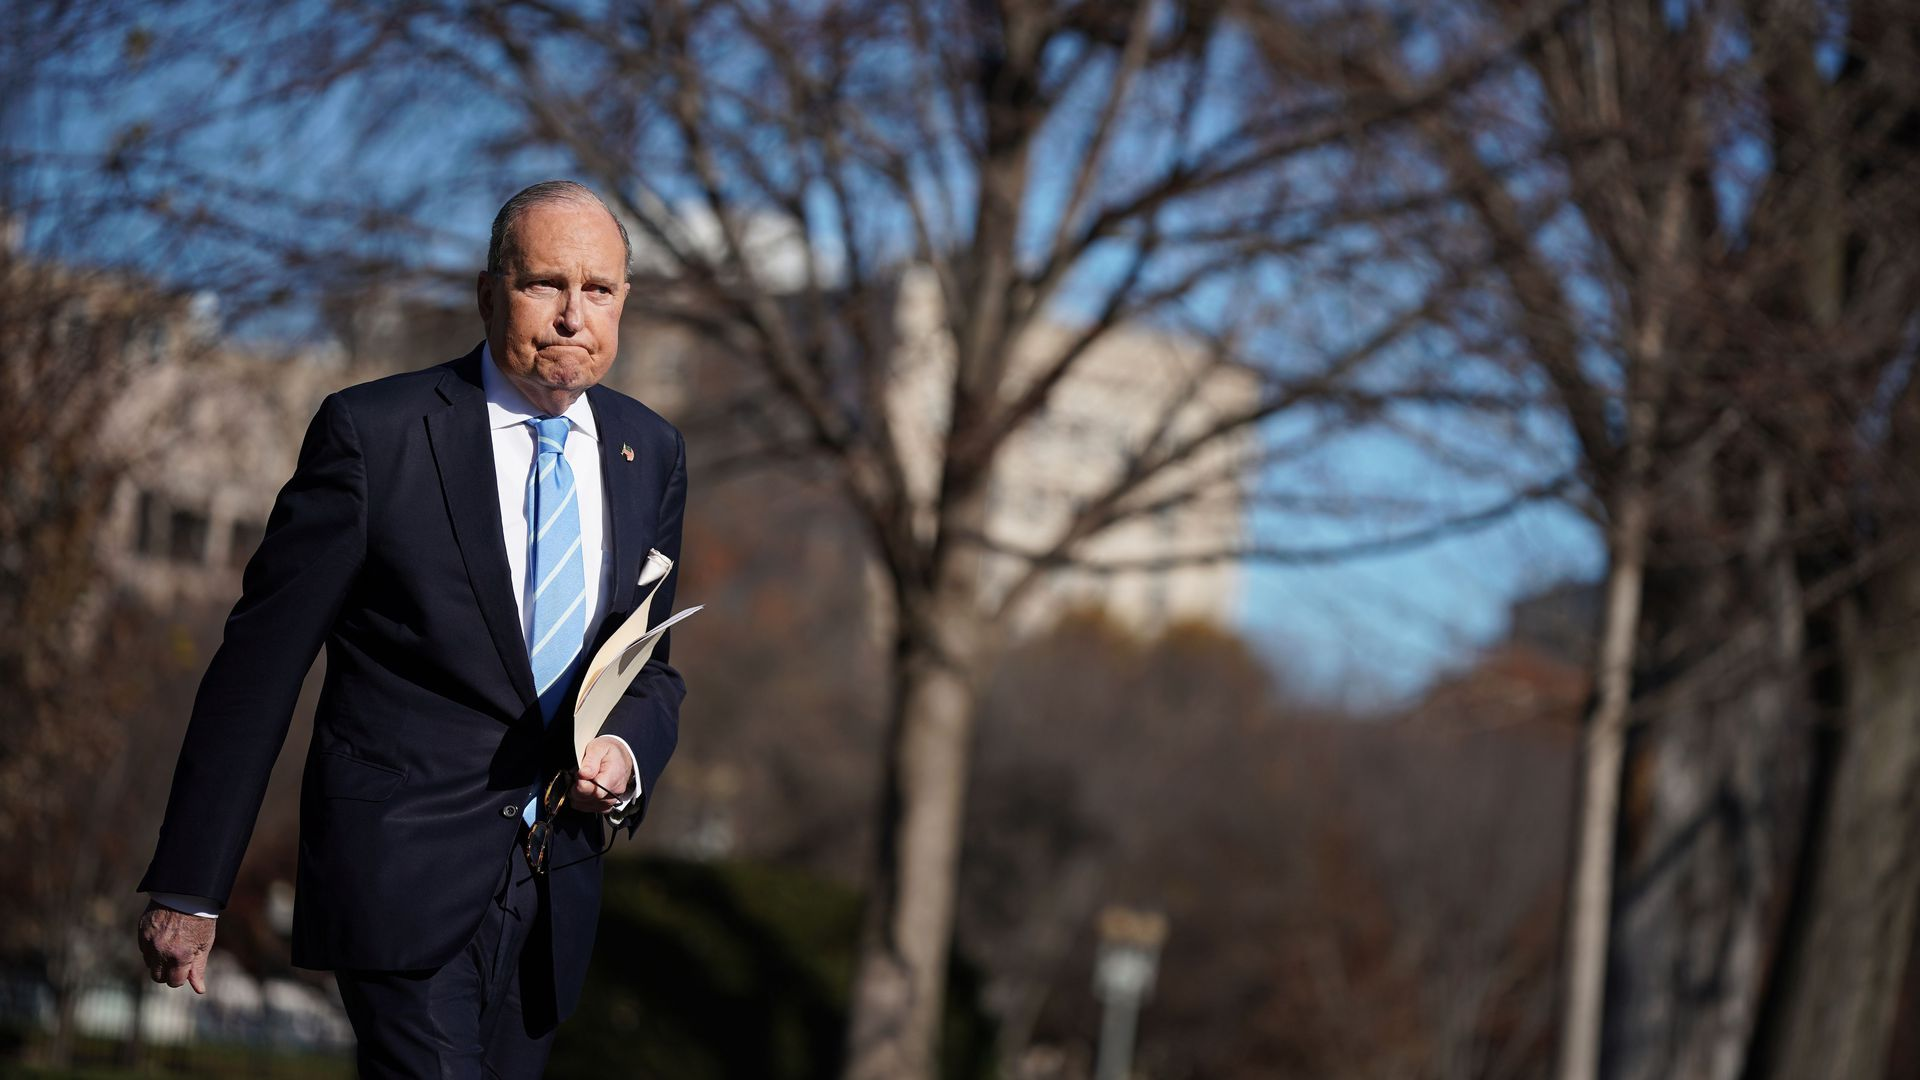 Larry Kudlow walks on the White House South Lawn.